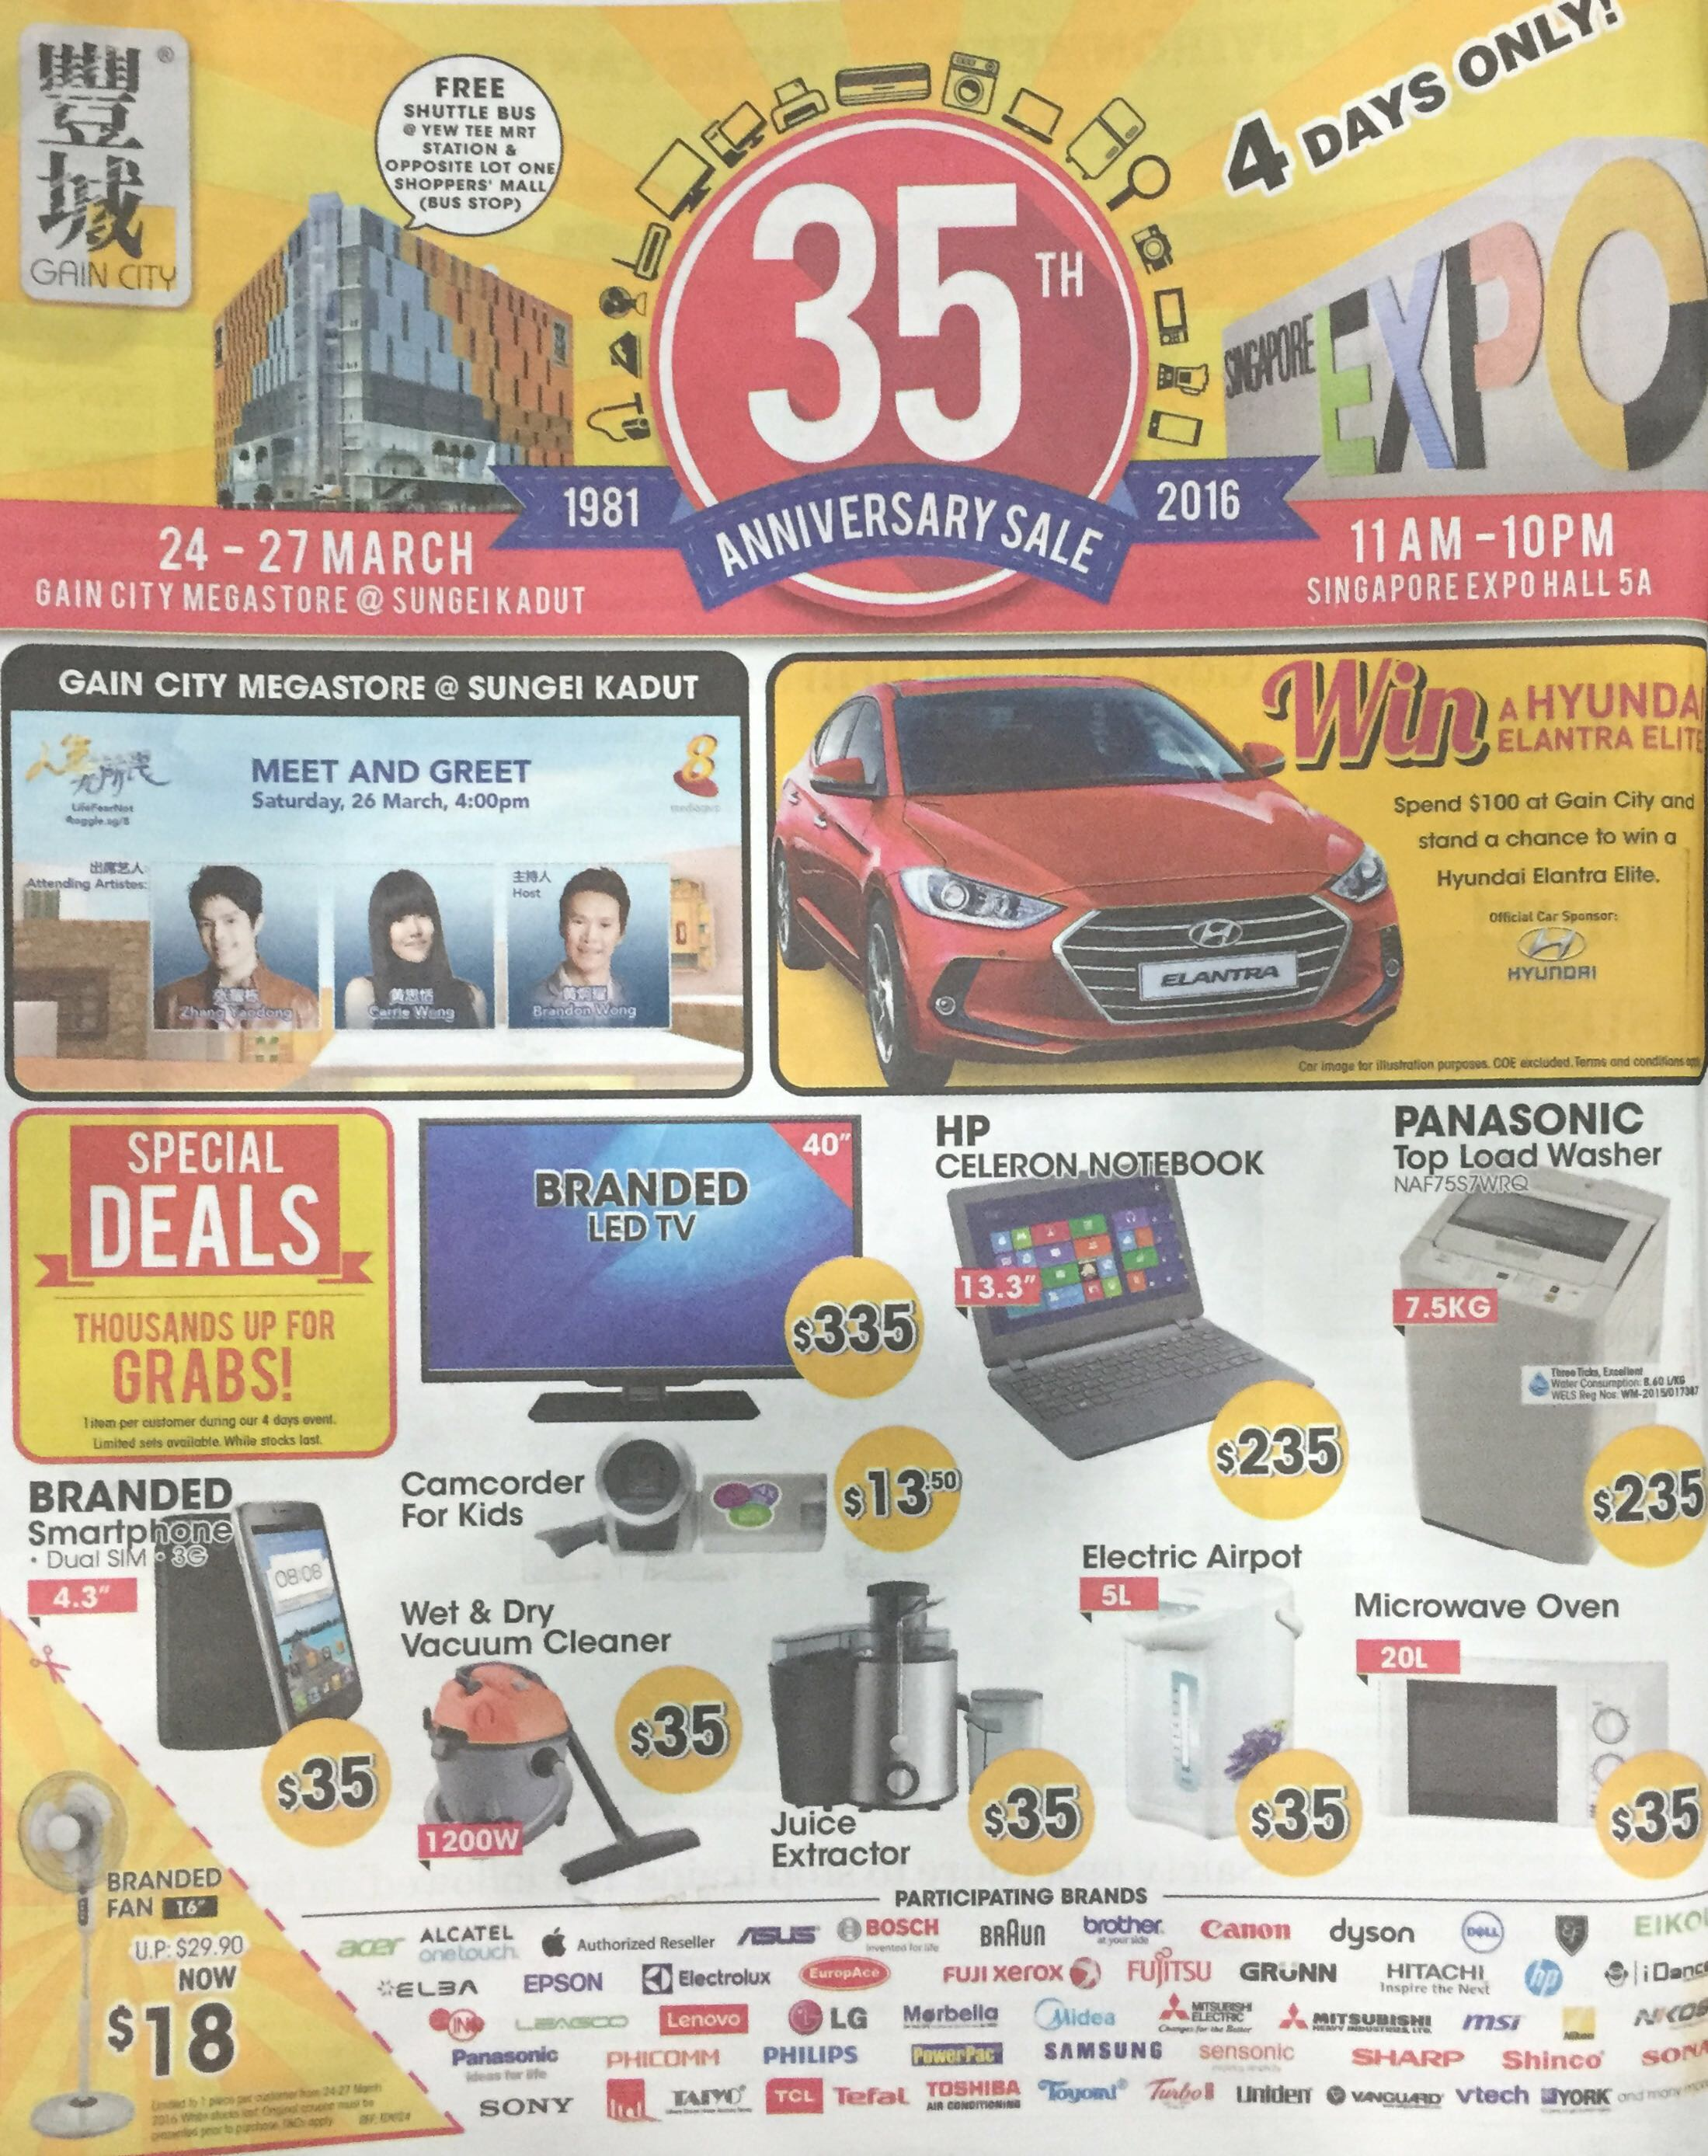 Gain City 35th Anniversary Sale | SINGAPORE EXPO | pg1